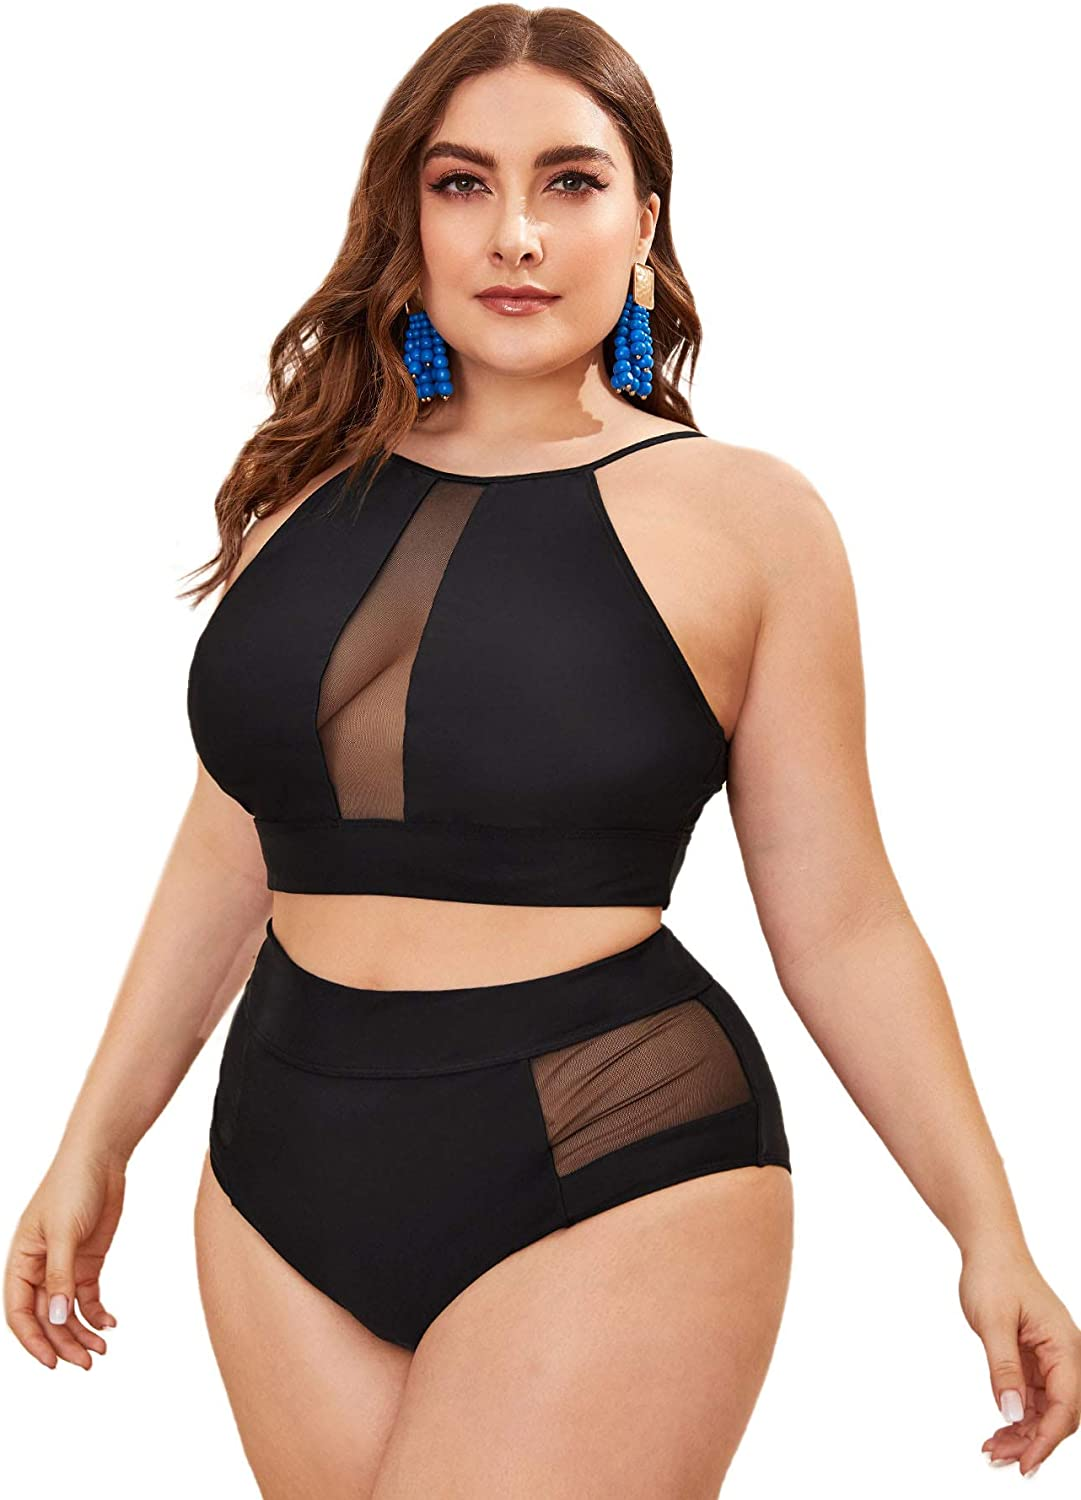 SOLY HUX Women's Plus Size Contrast Mesh High Waisted Bikini 2 Piece Swimsuit Bathing Suits